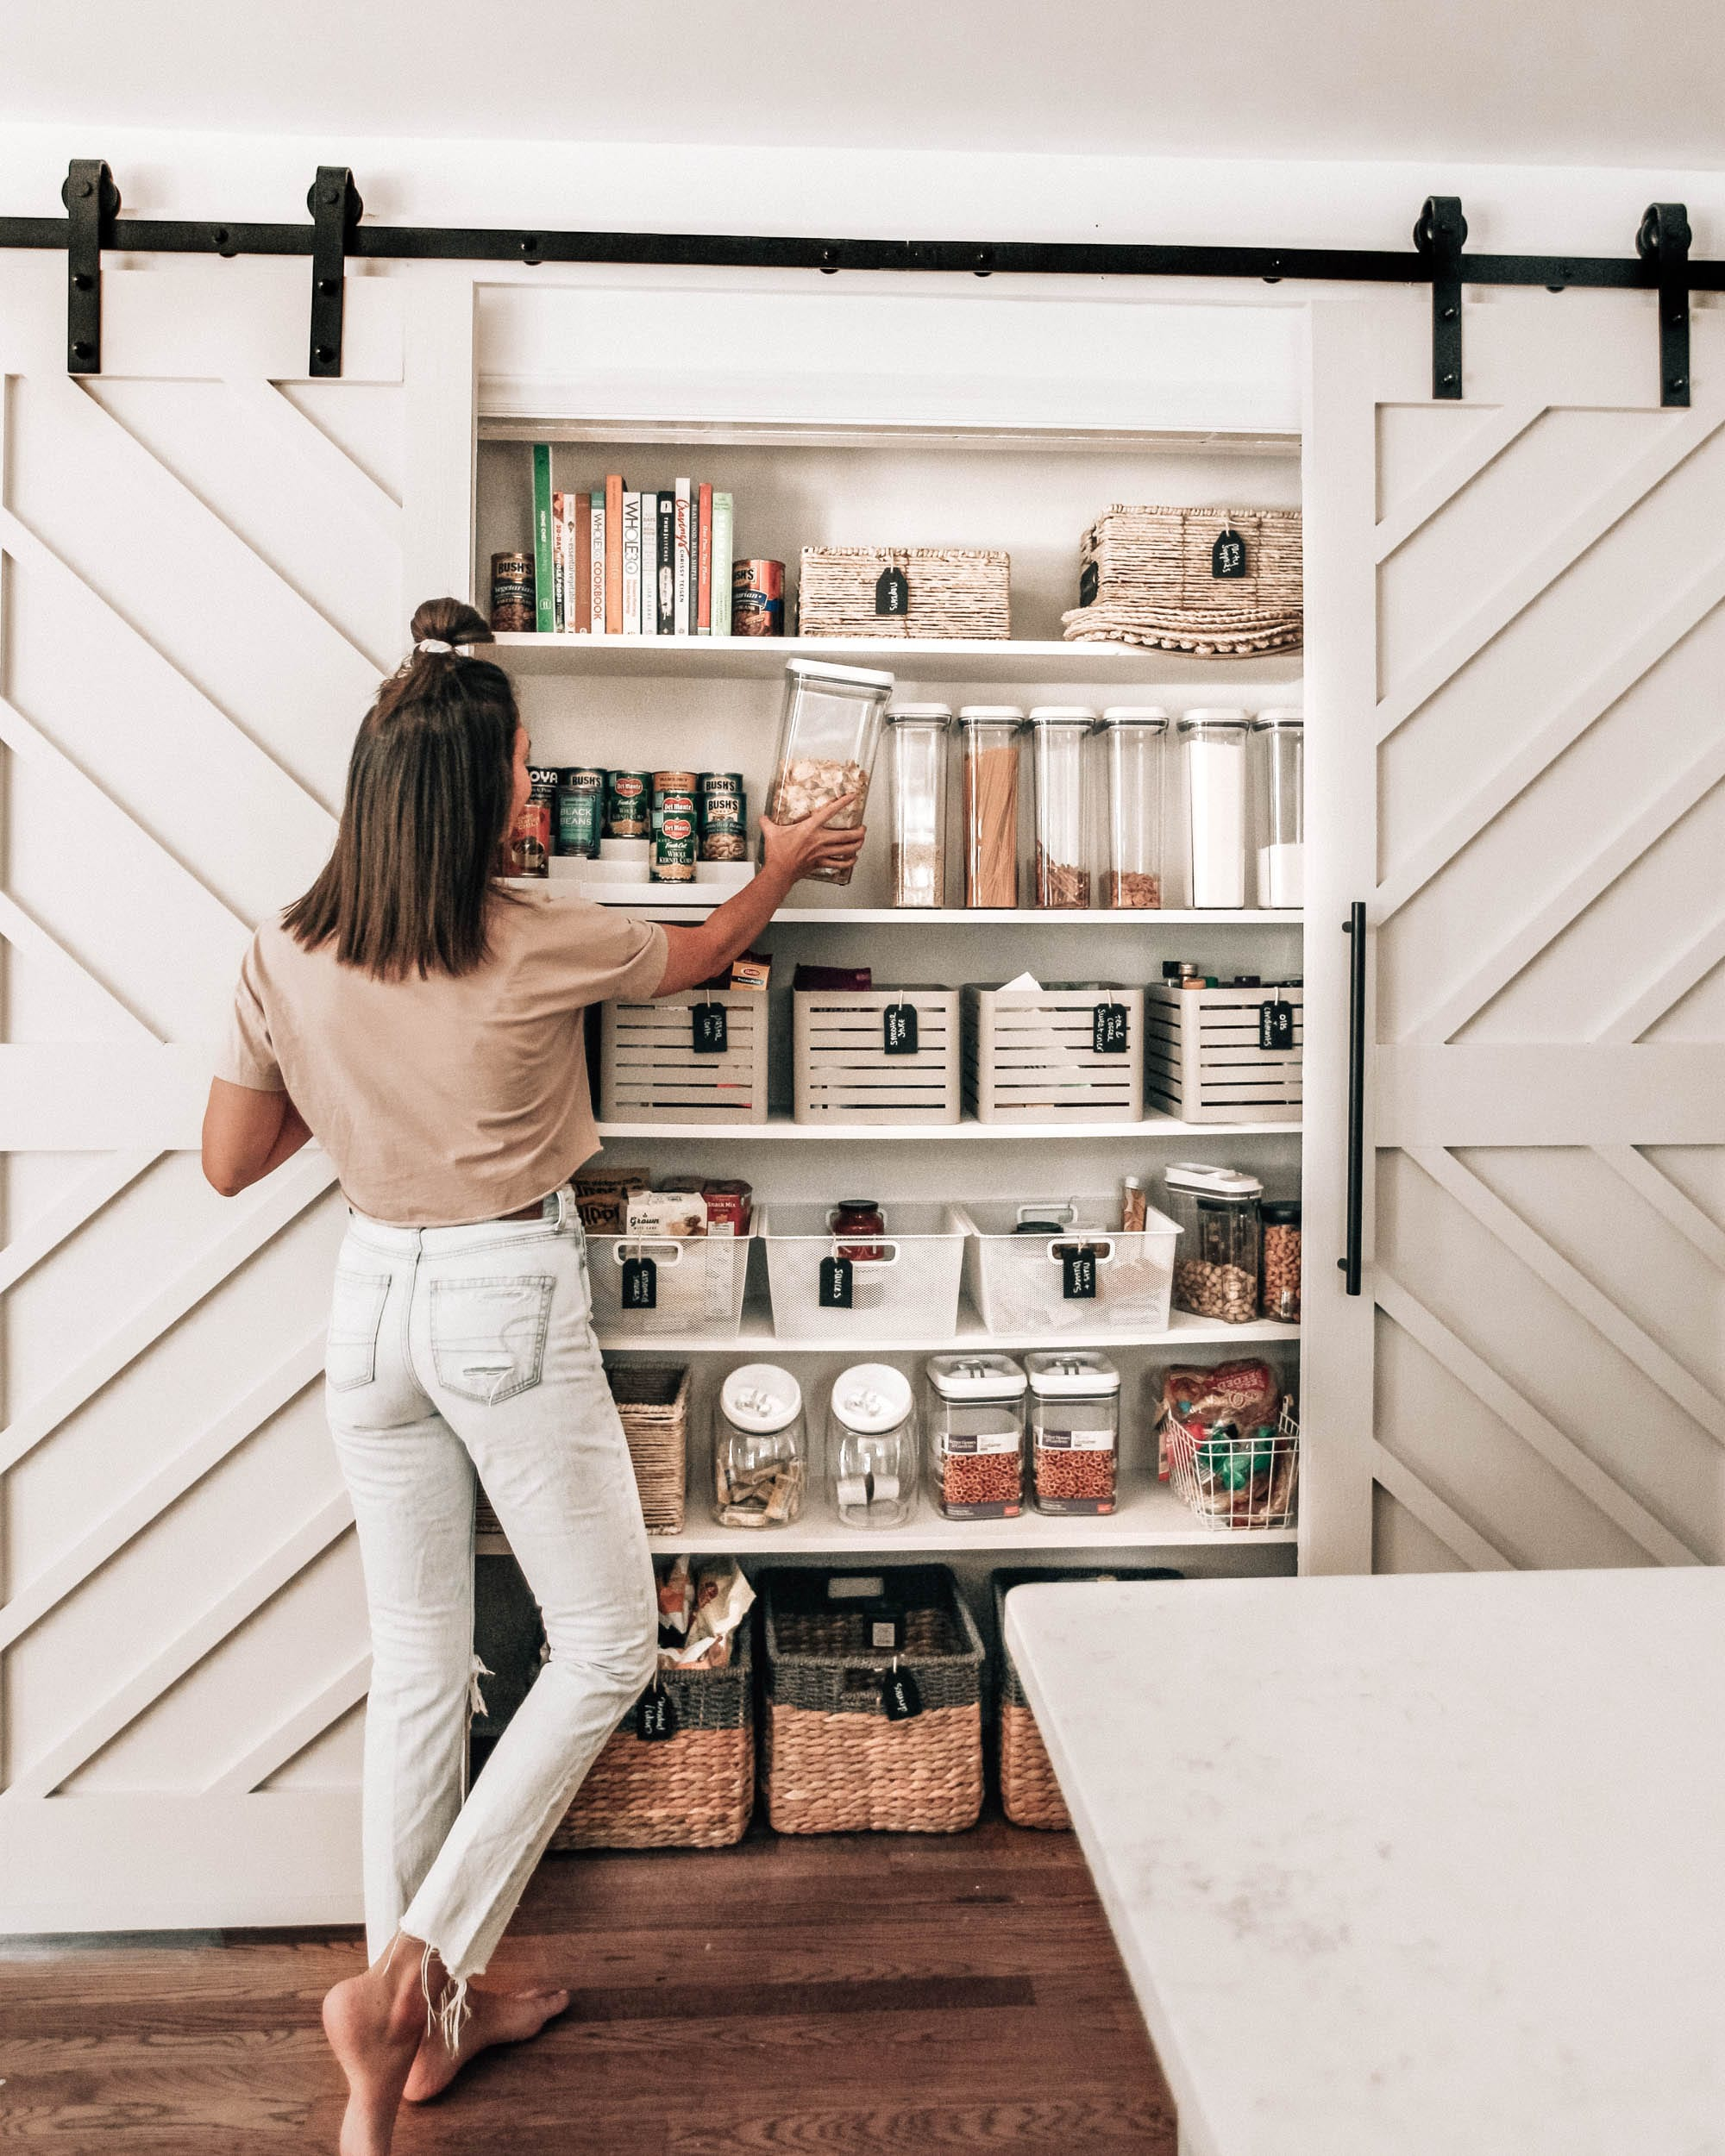 New Home Decor Ideas by popular Washington D.C. life and style blogger, Alicia Tenise: image of an organized pantry with sliding barn doors.